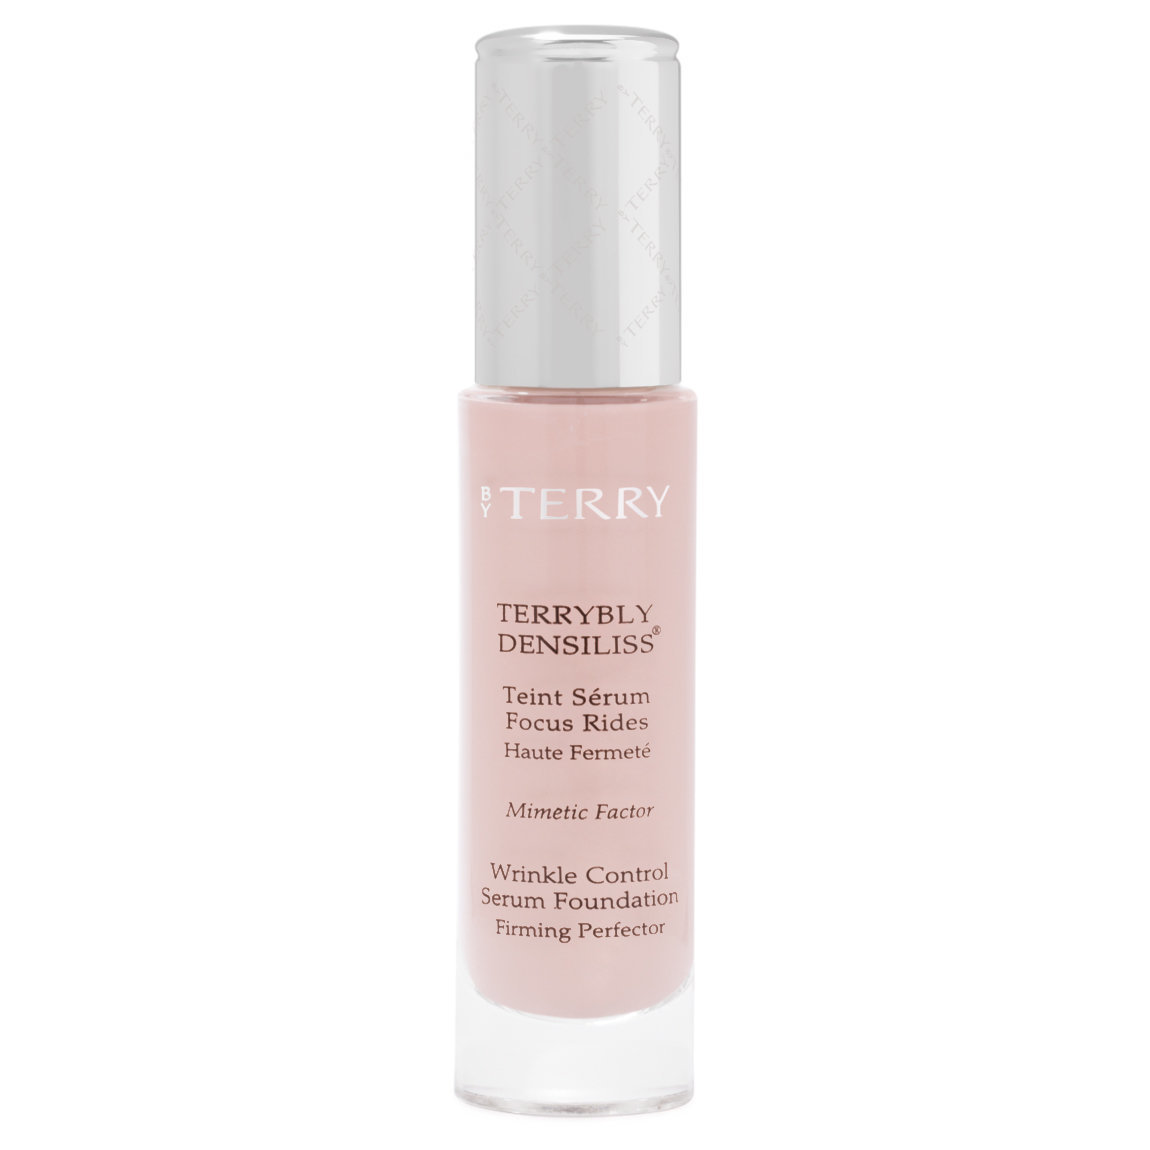 BY TERRY BY TERRY Terrybly Densiliss Anti-Wrinkle Serum Foundation 1 Fresh Fair